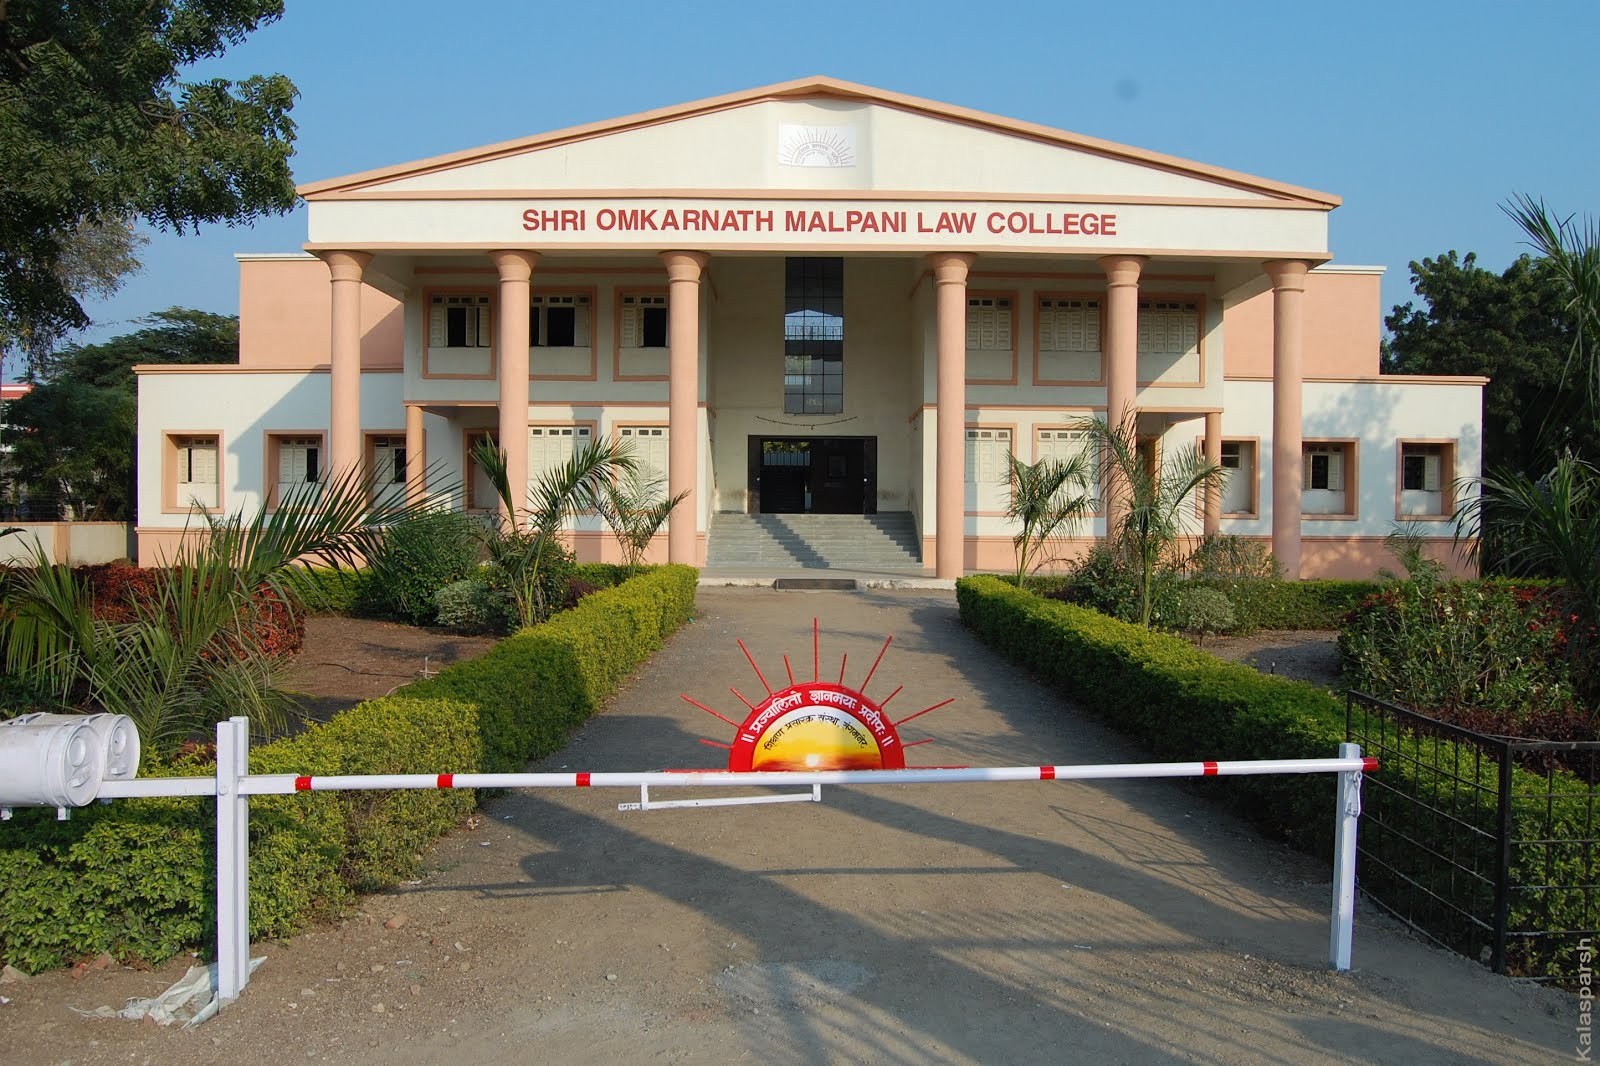 Shri. Omkarnath Malpani Law College